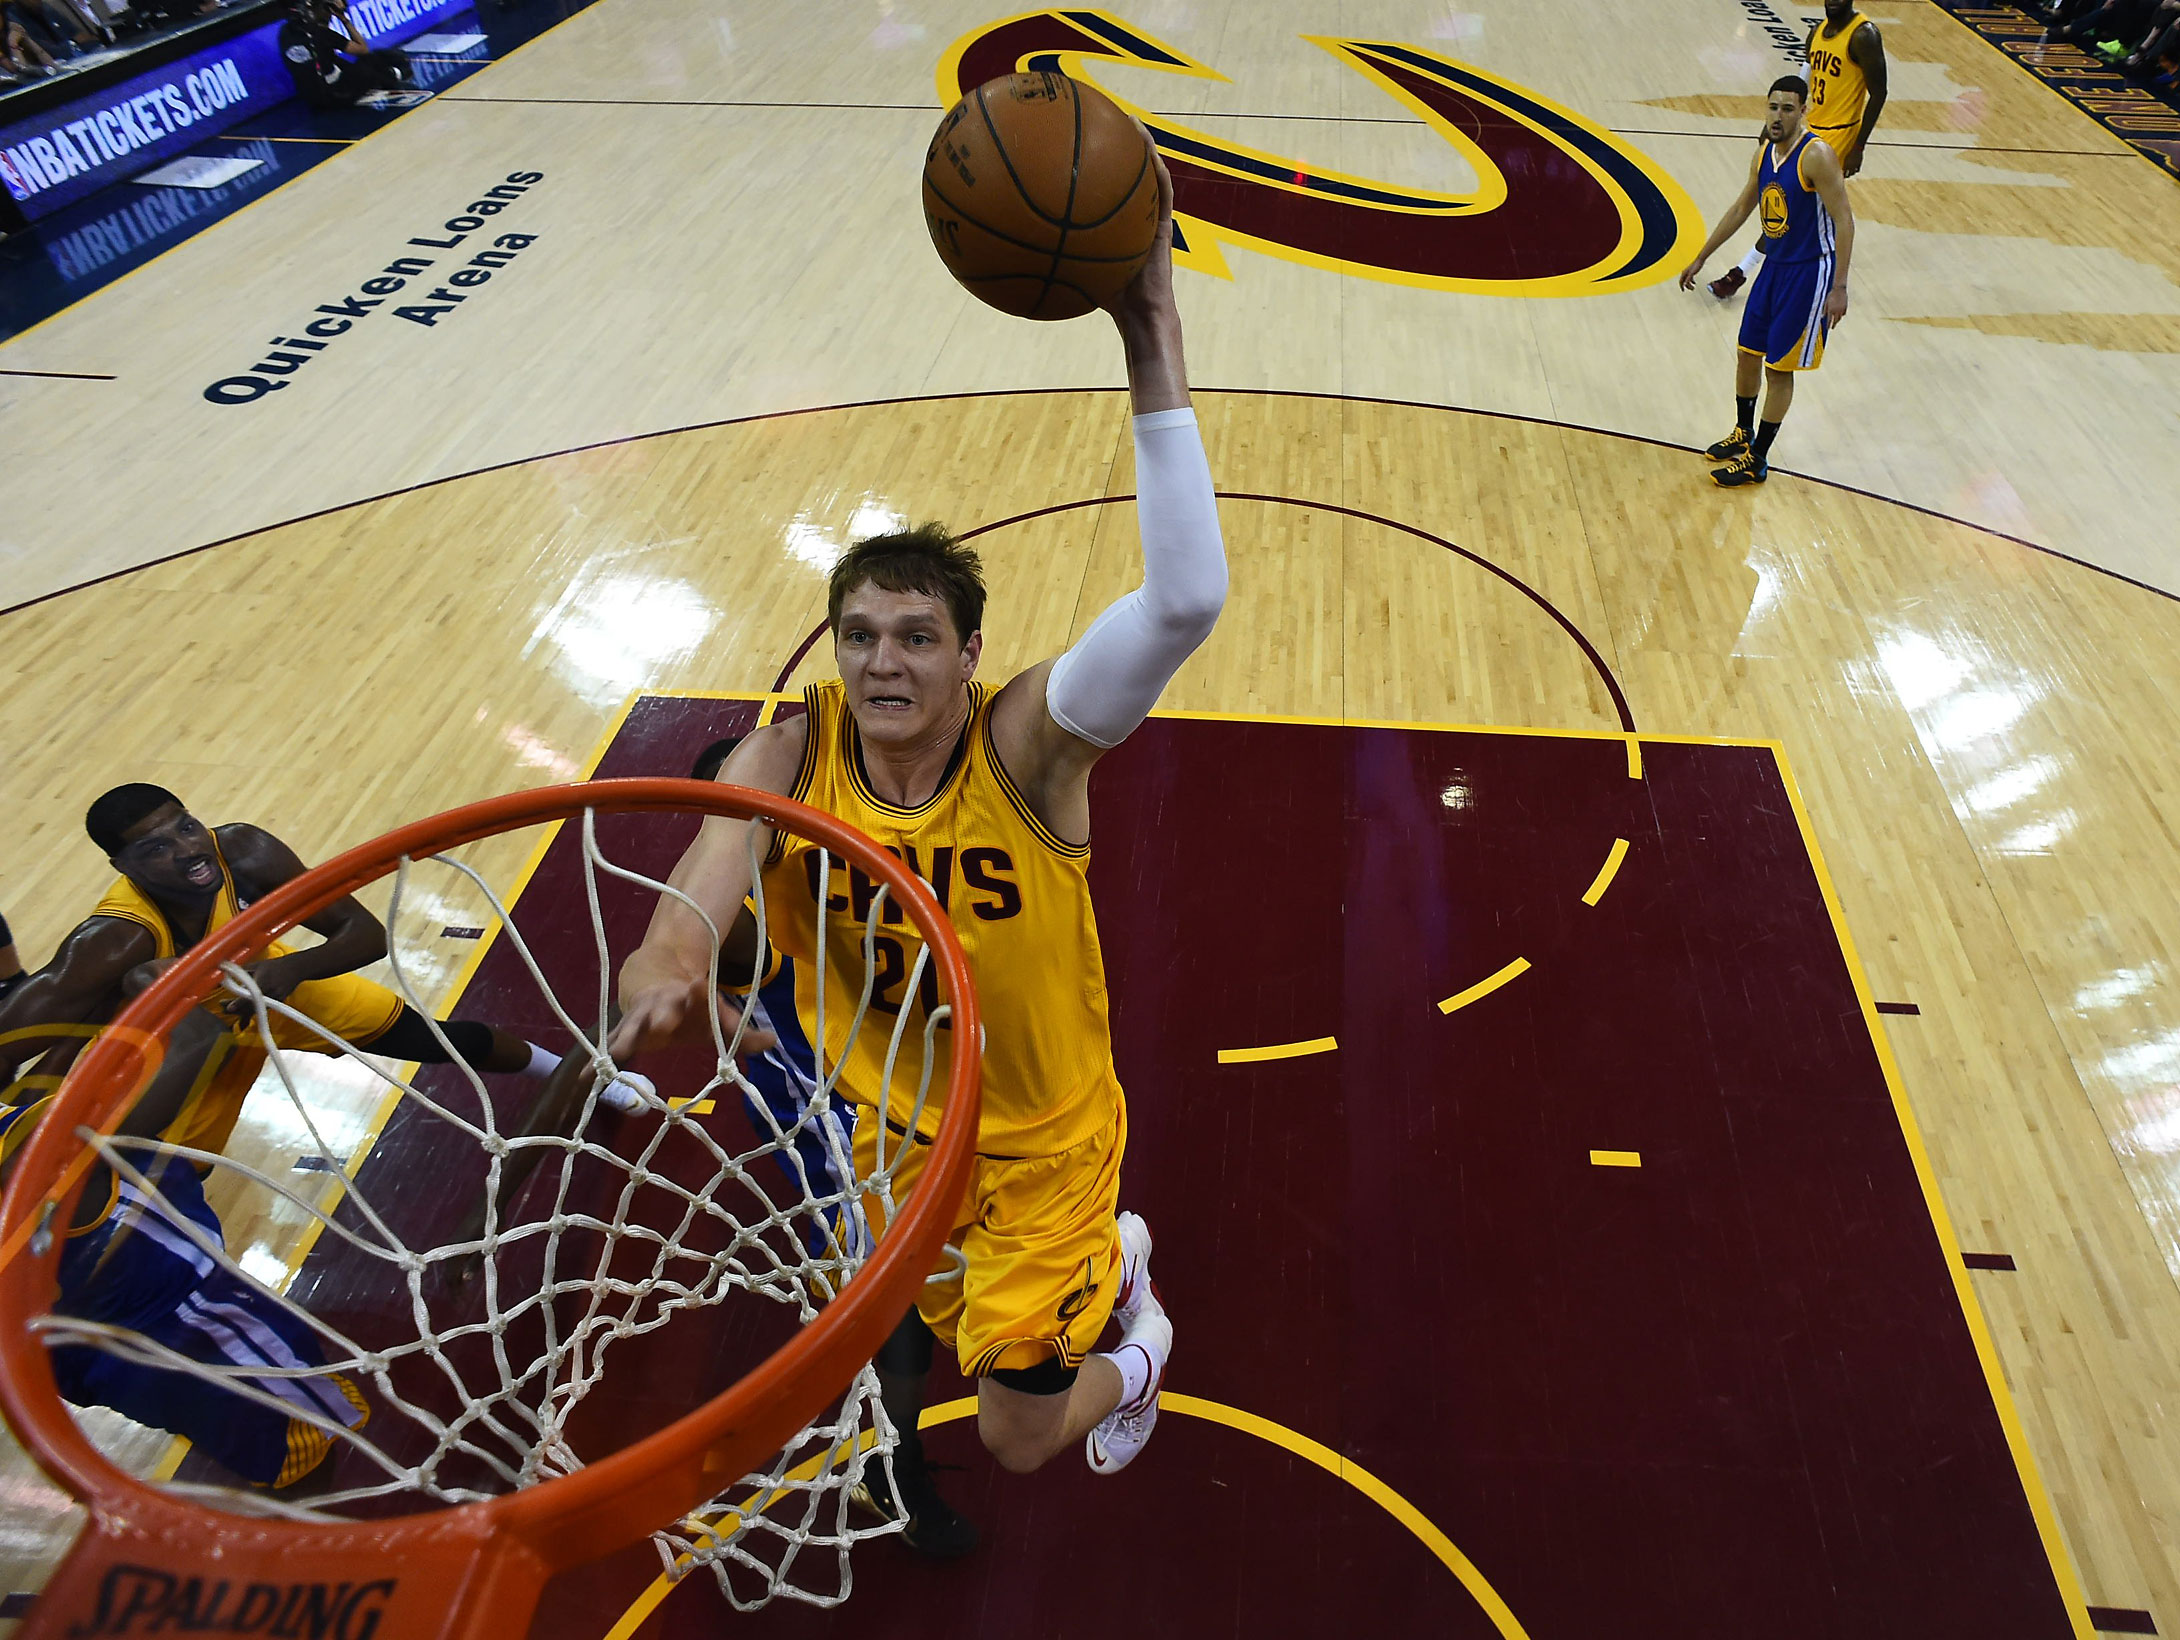 Timofey Mozgov scored a career-high 28 points in Game 4 to lead all players in scoring.